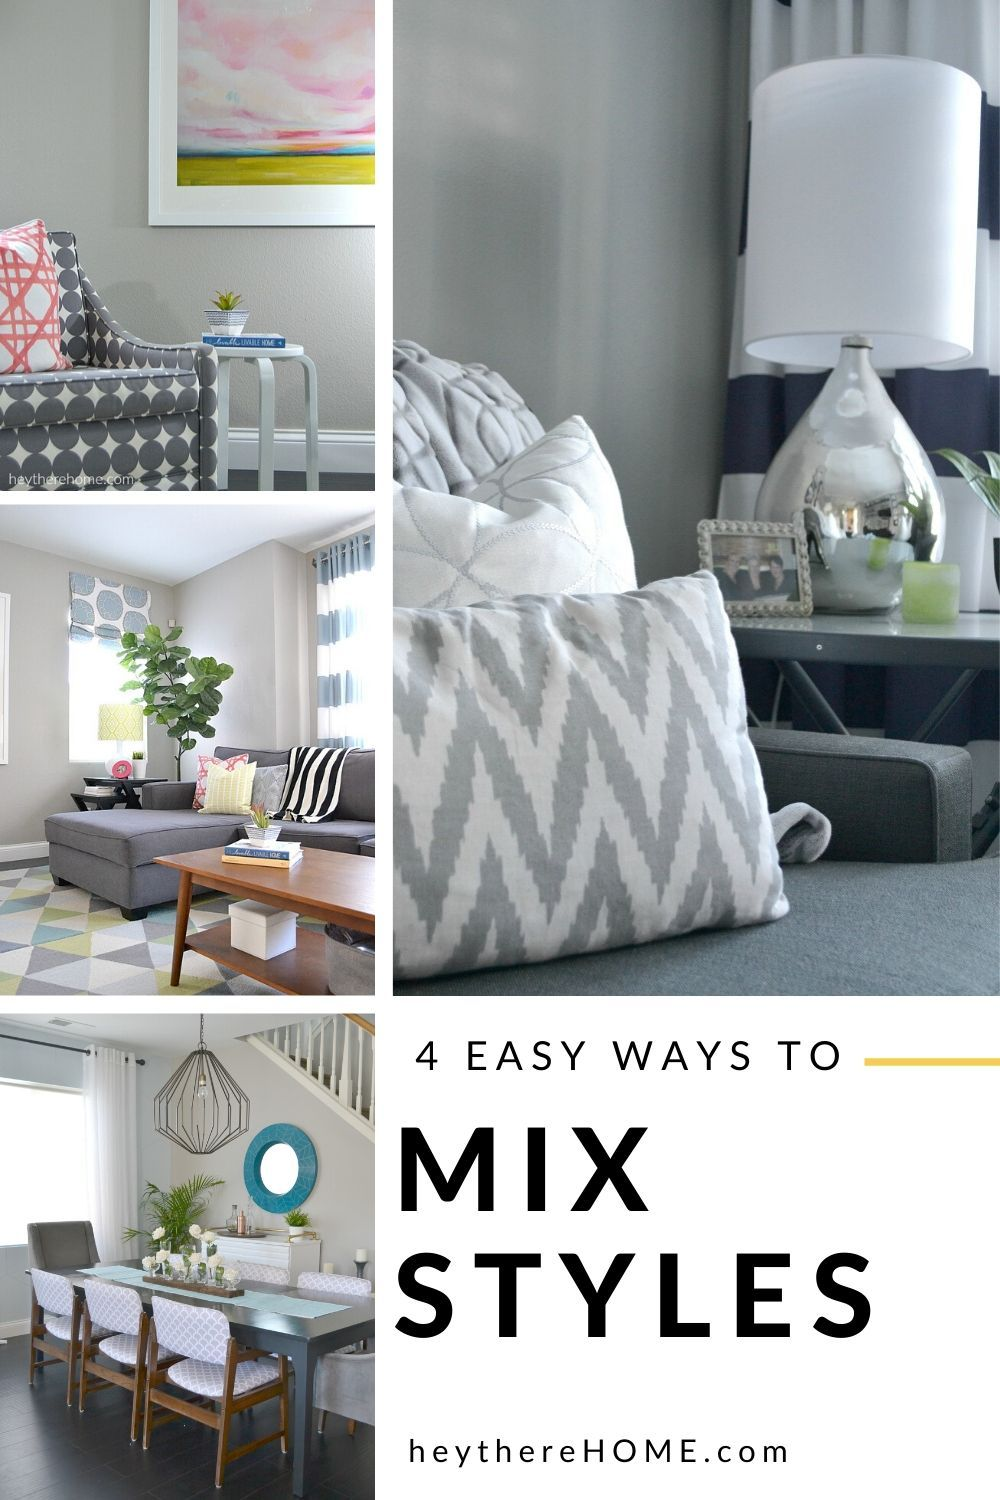 4 simple tips that will having you mixing different decorating styles like a pro!  #homedecor #decorating #decorstyle #decorproblems  via @heytherehome.com